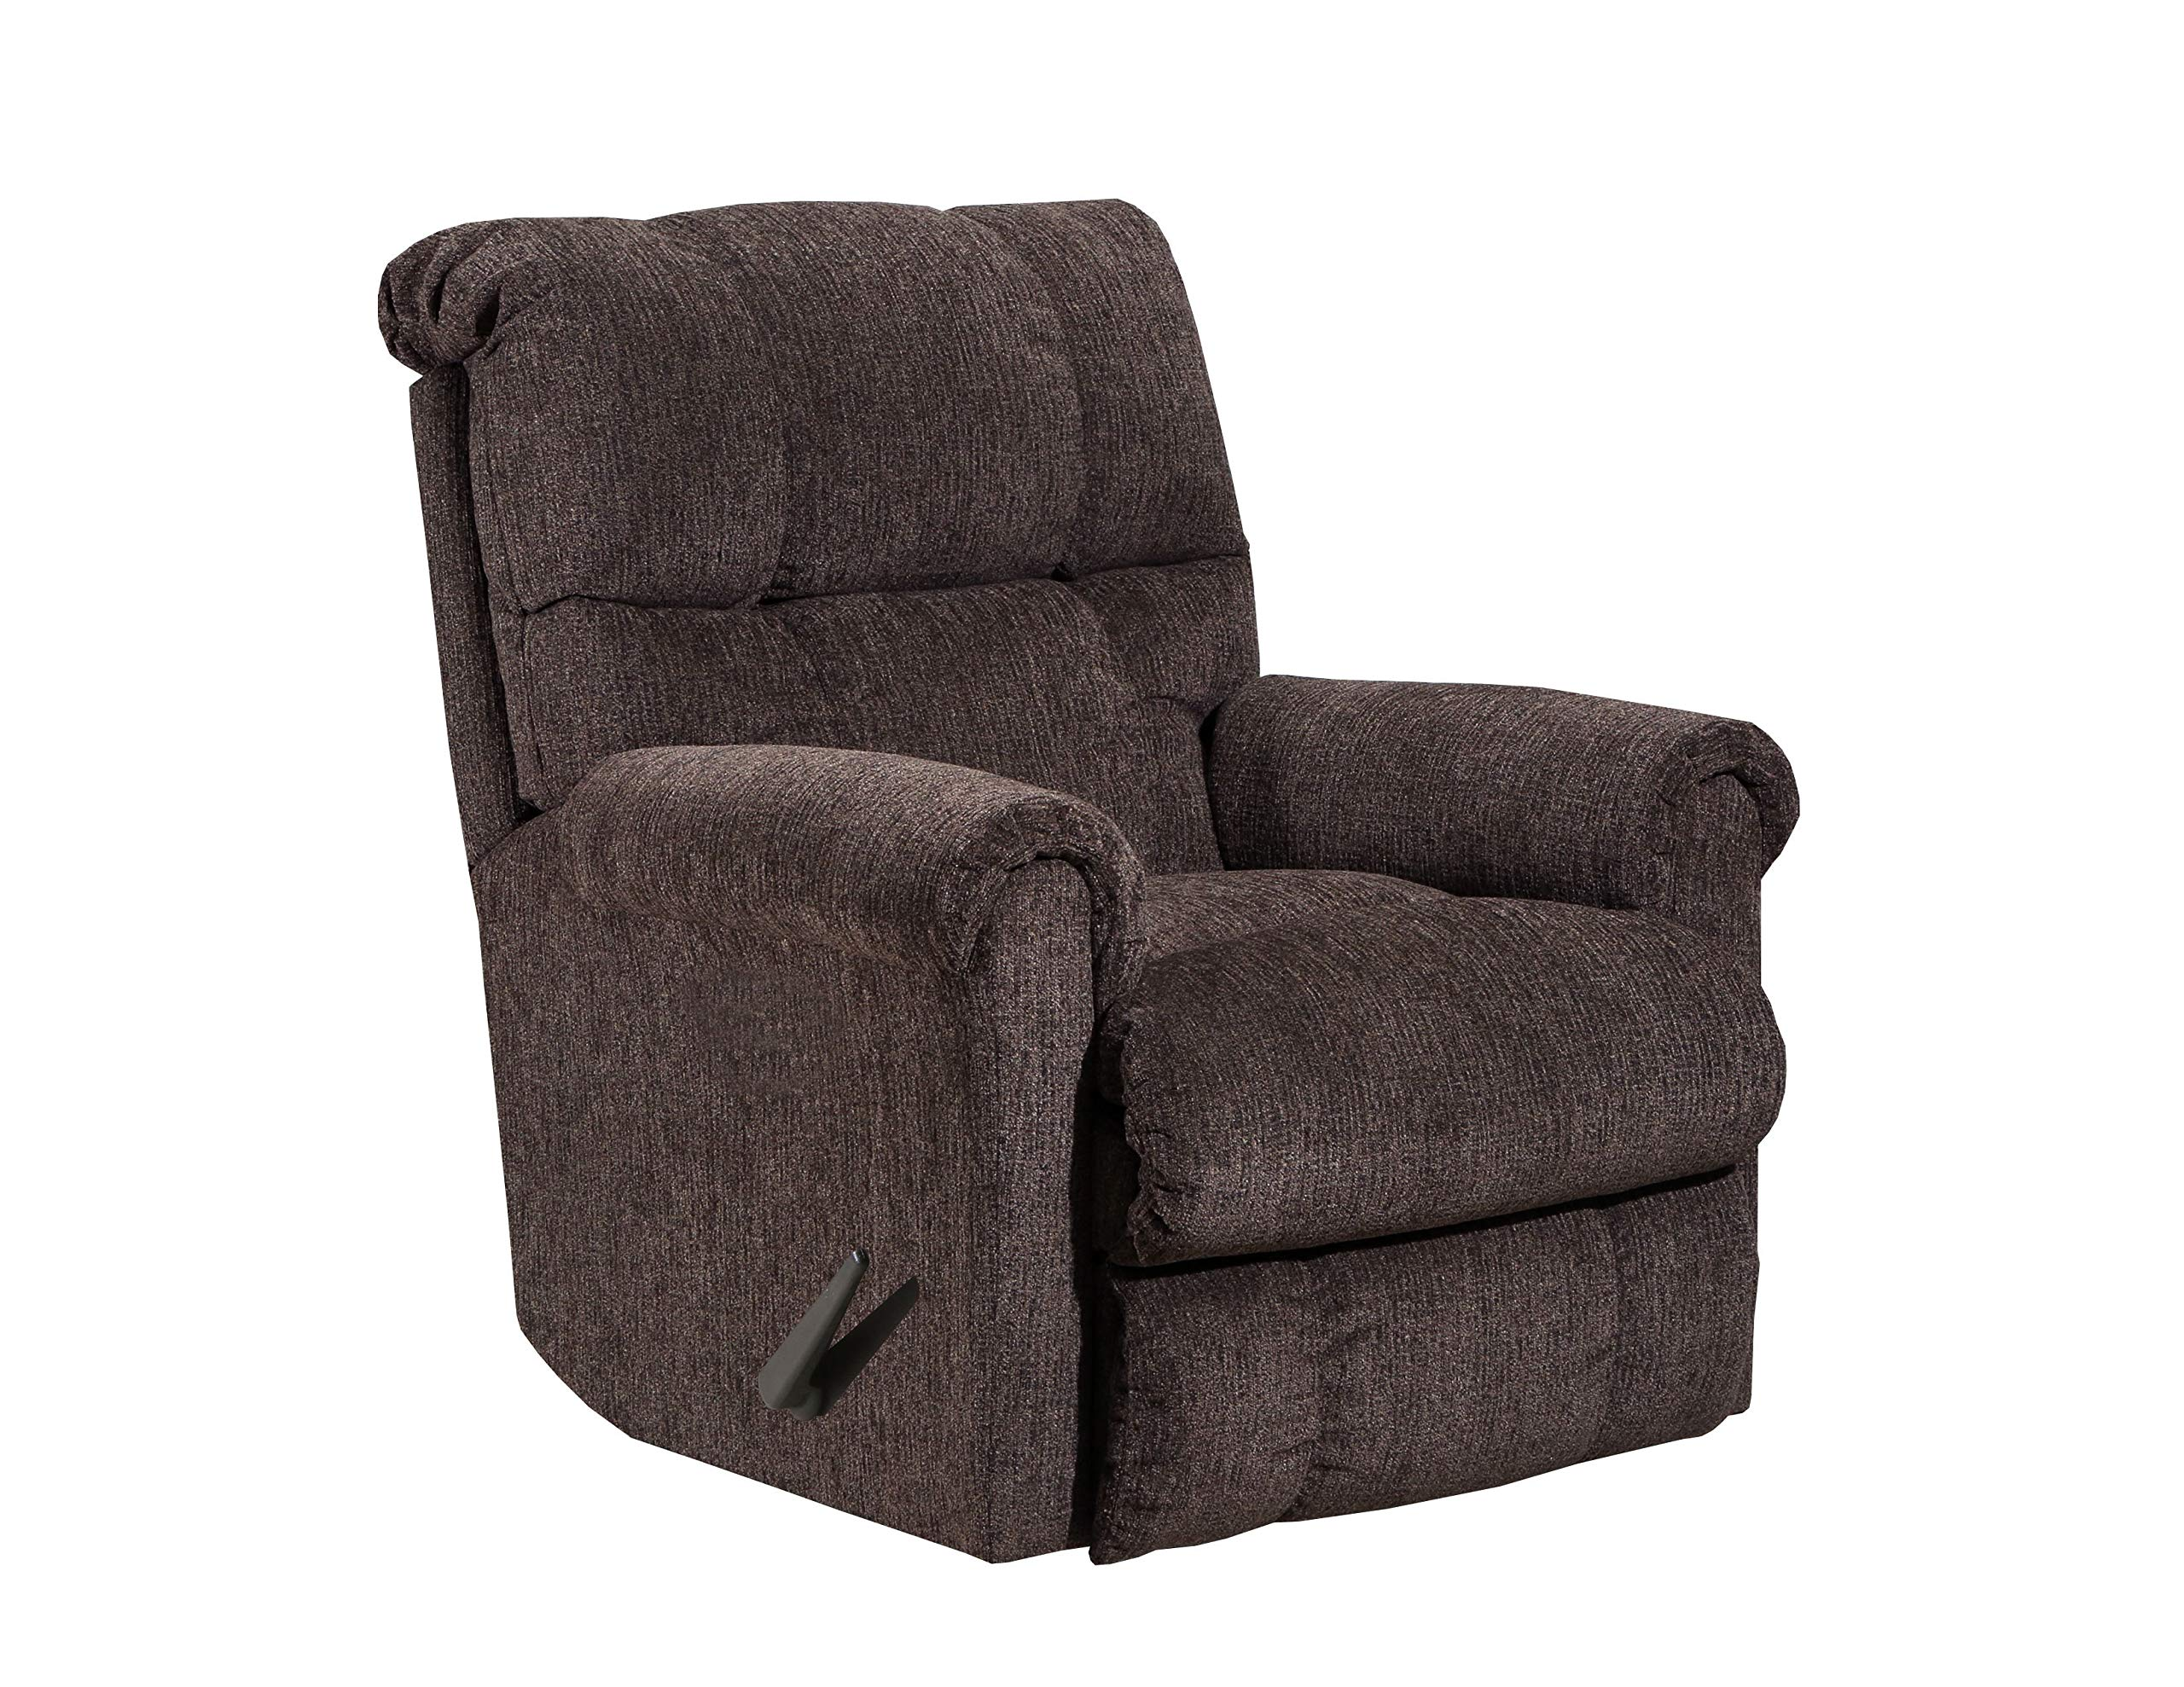 Lane Home Furnishings 4208 18 Crisscross Latte Swivel Rocker Recliner Latte